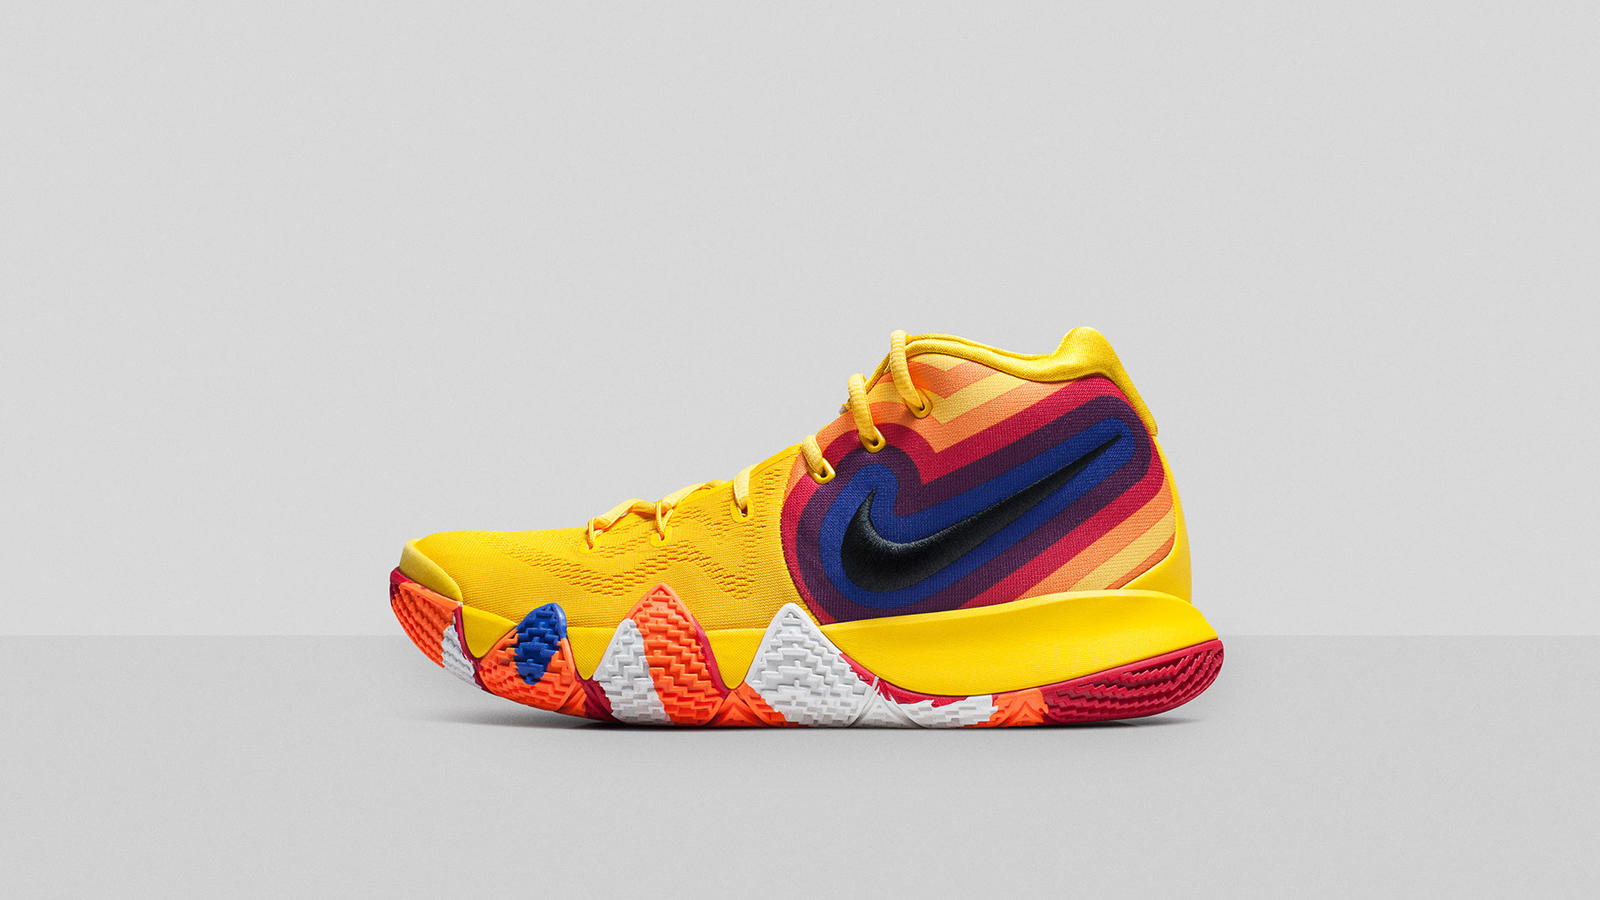 quality design 64216 a4239 KYRIE 4 Decades Pack - Nike News